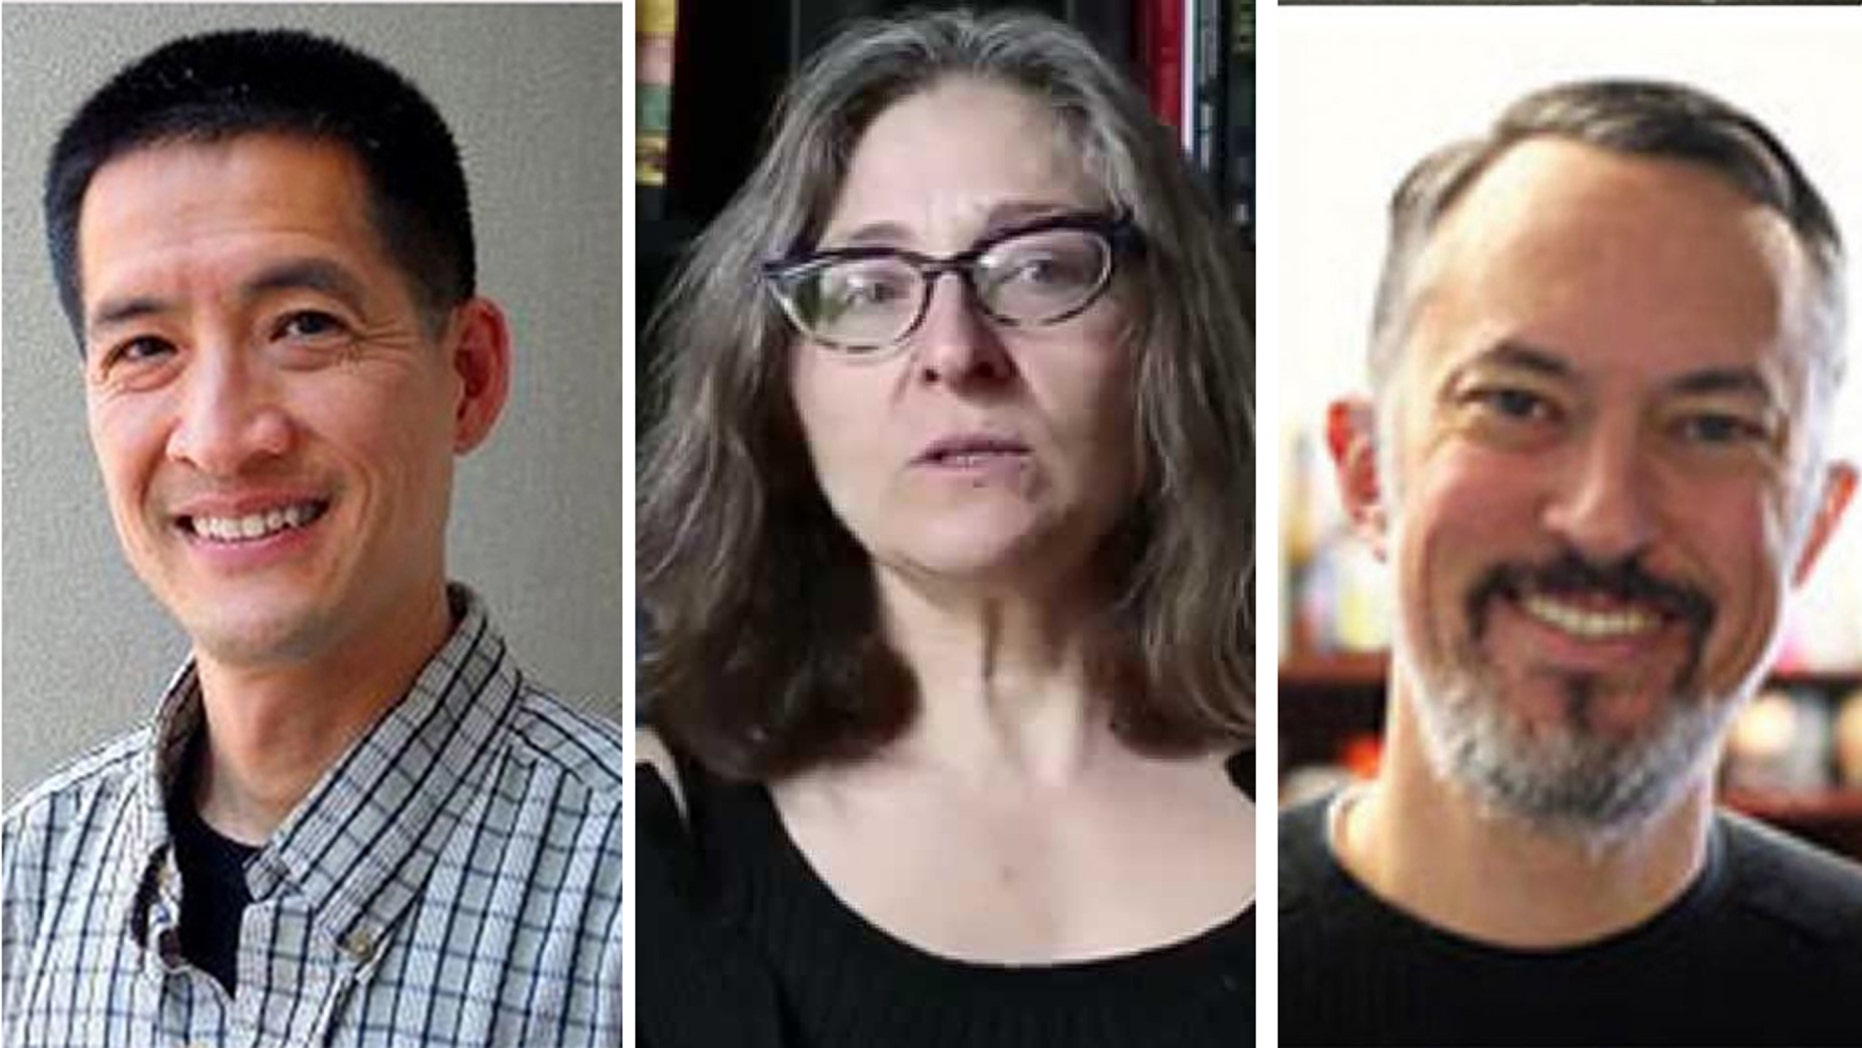 Dr. Tat-siong Benny Liew (left), Dr. Carol Christine Fair (middle), and Dr. Matthew Gabriele are just a few professors who made the list this year.